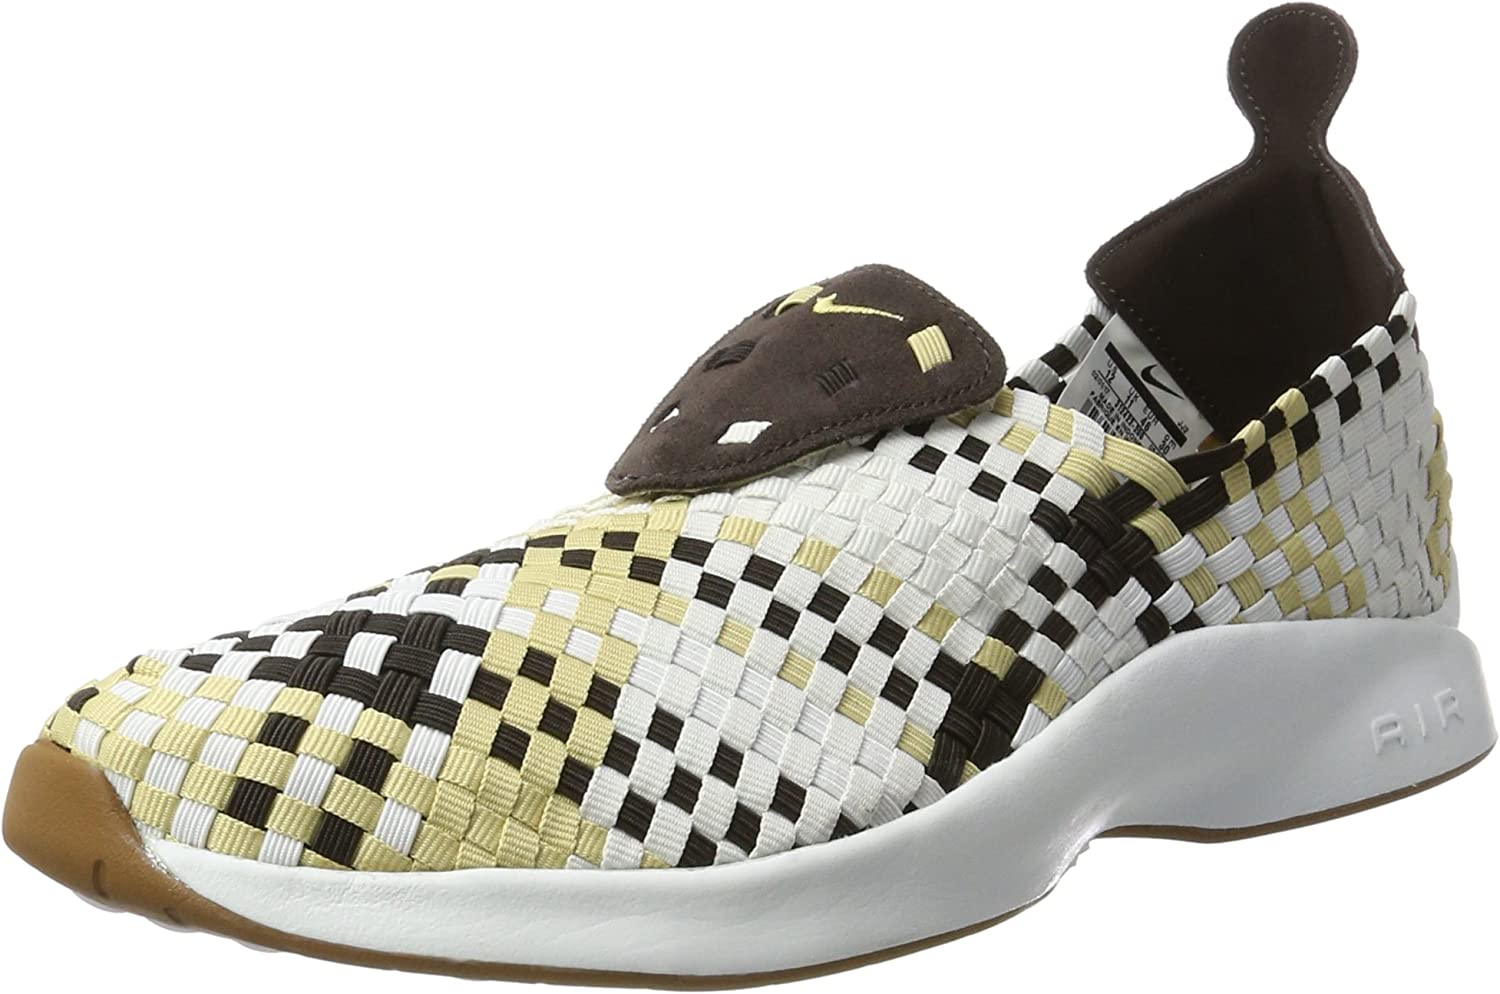 Nike Men's Air Woven Gymnastics shoes